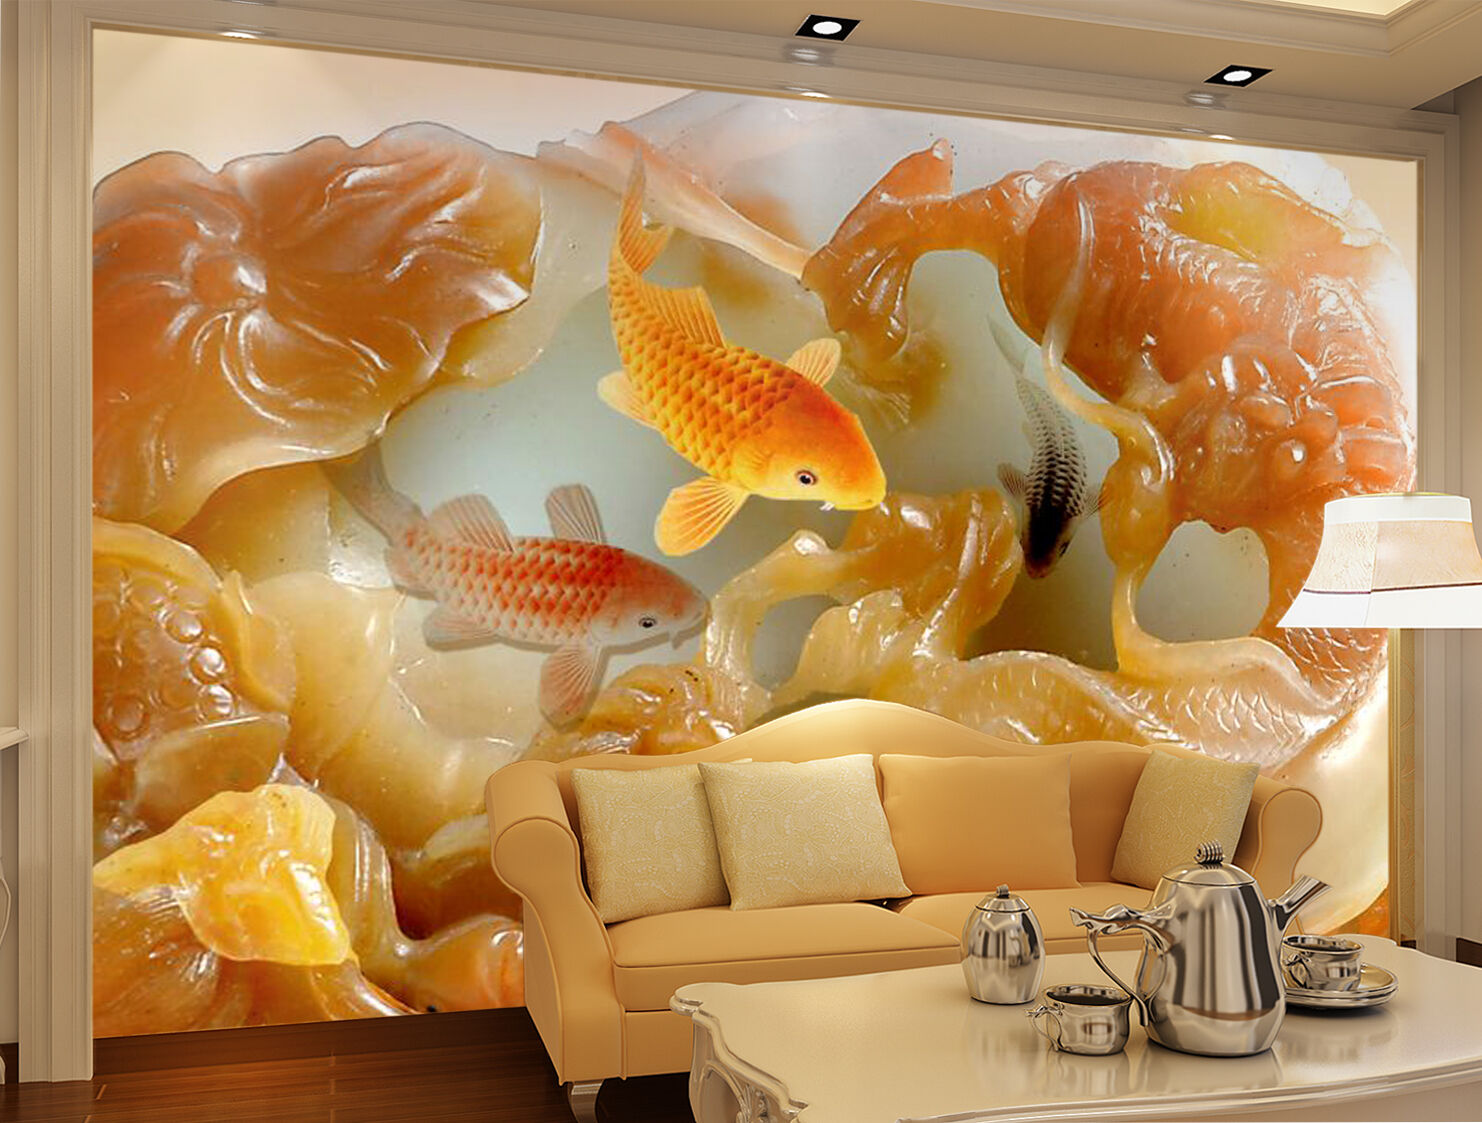 3D Fish carving texture Wall Paper wall Print Decal Wall Deco Indoor wall Mural